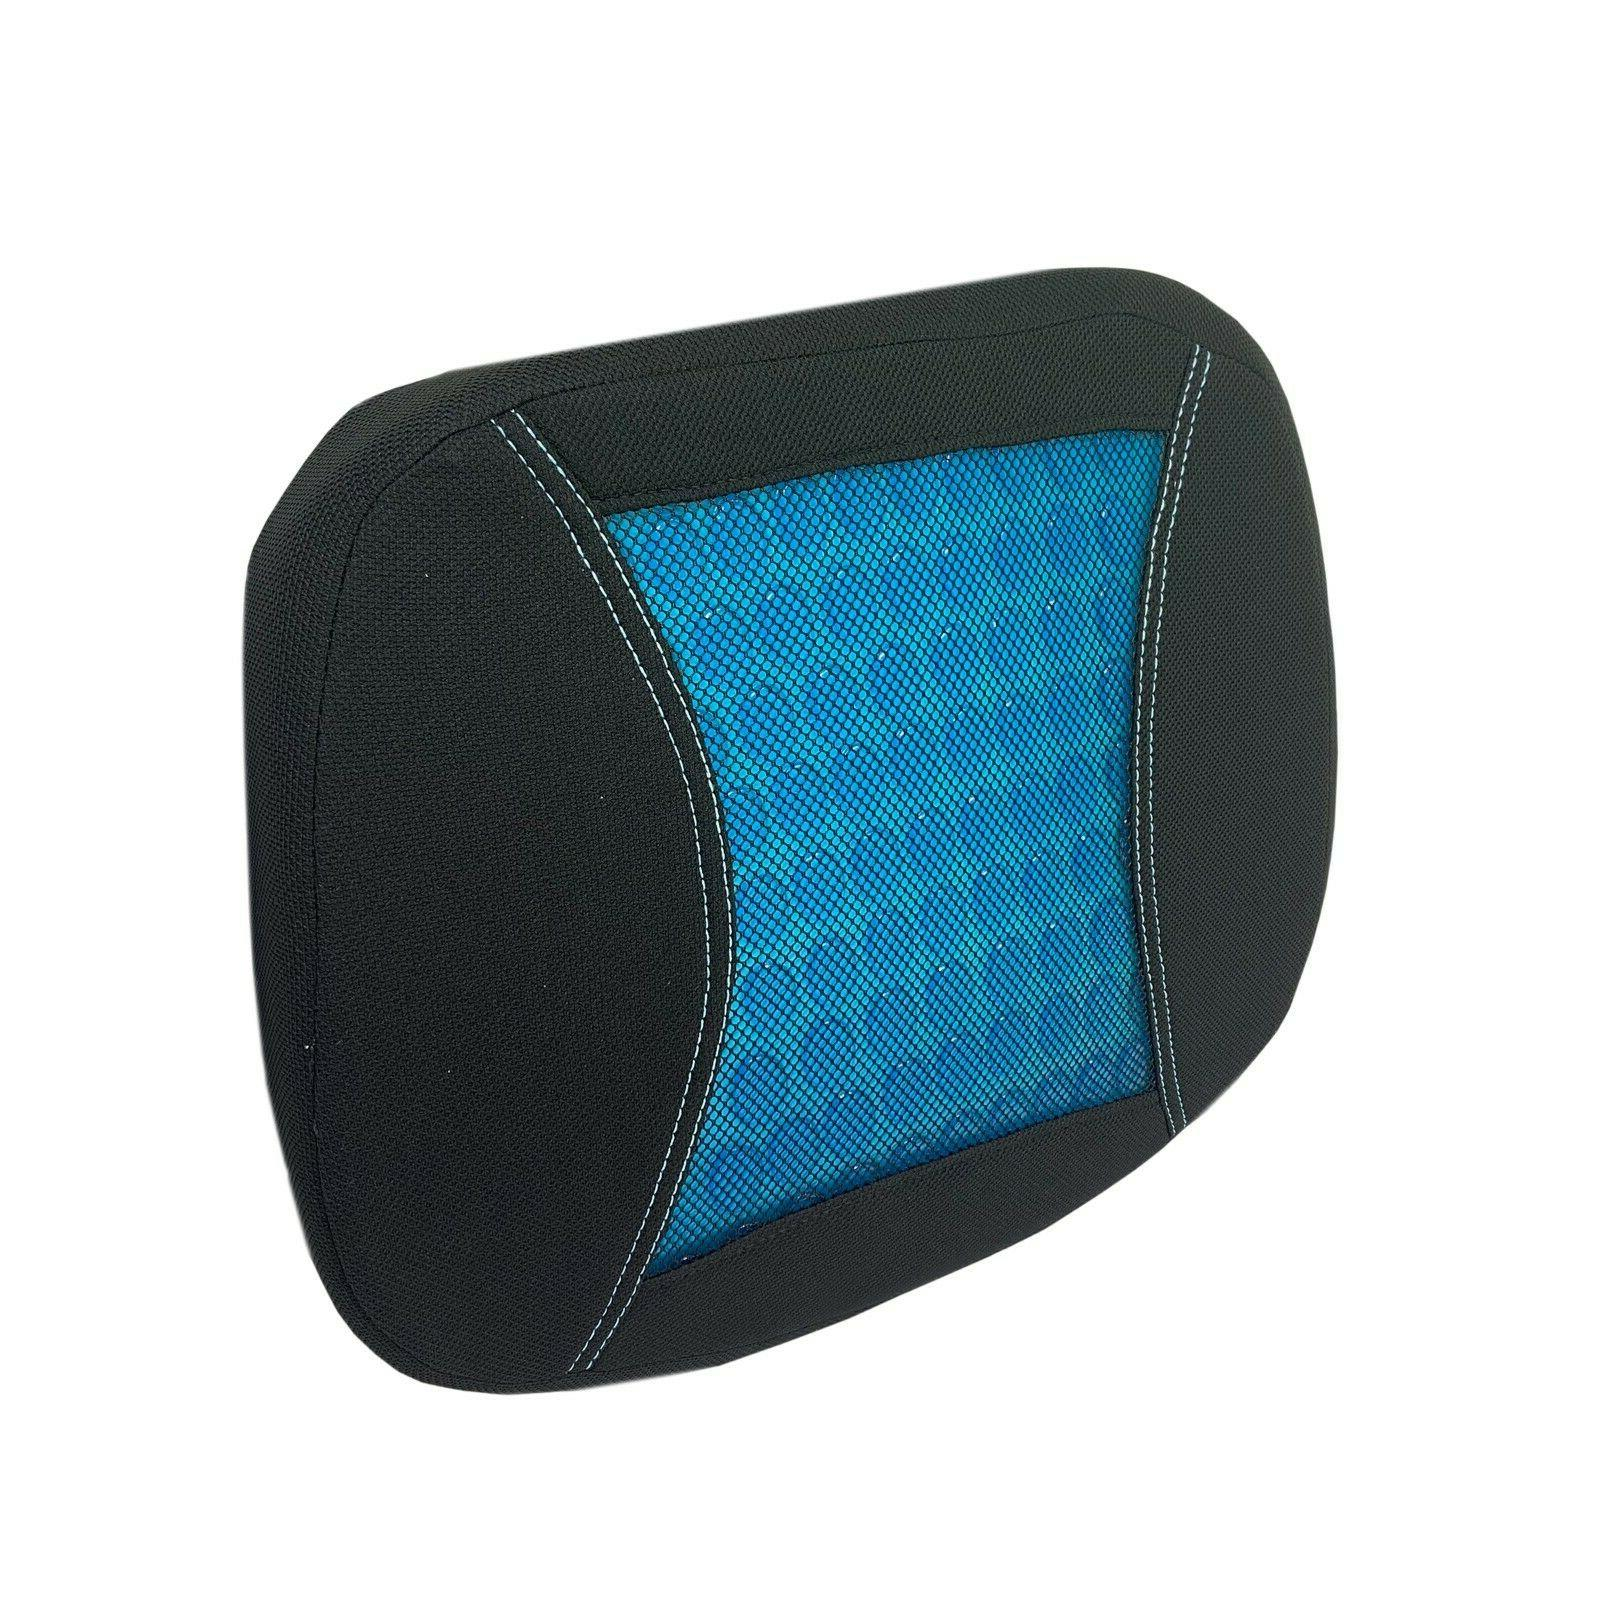 Orthopedic Gel Foam Chair Cushion